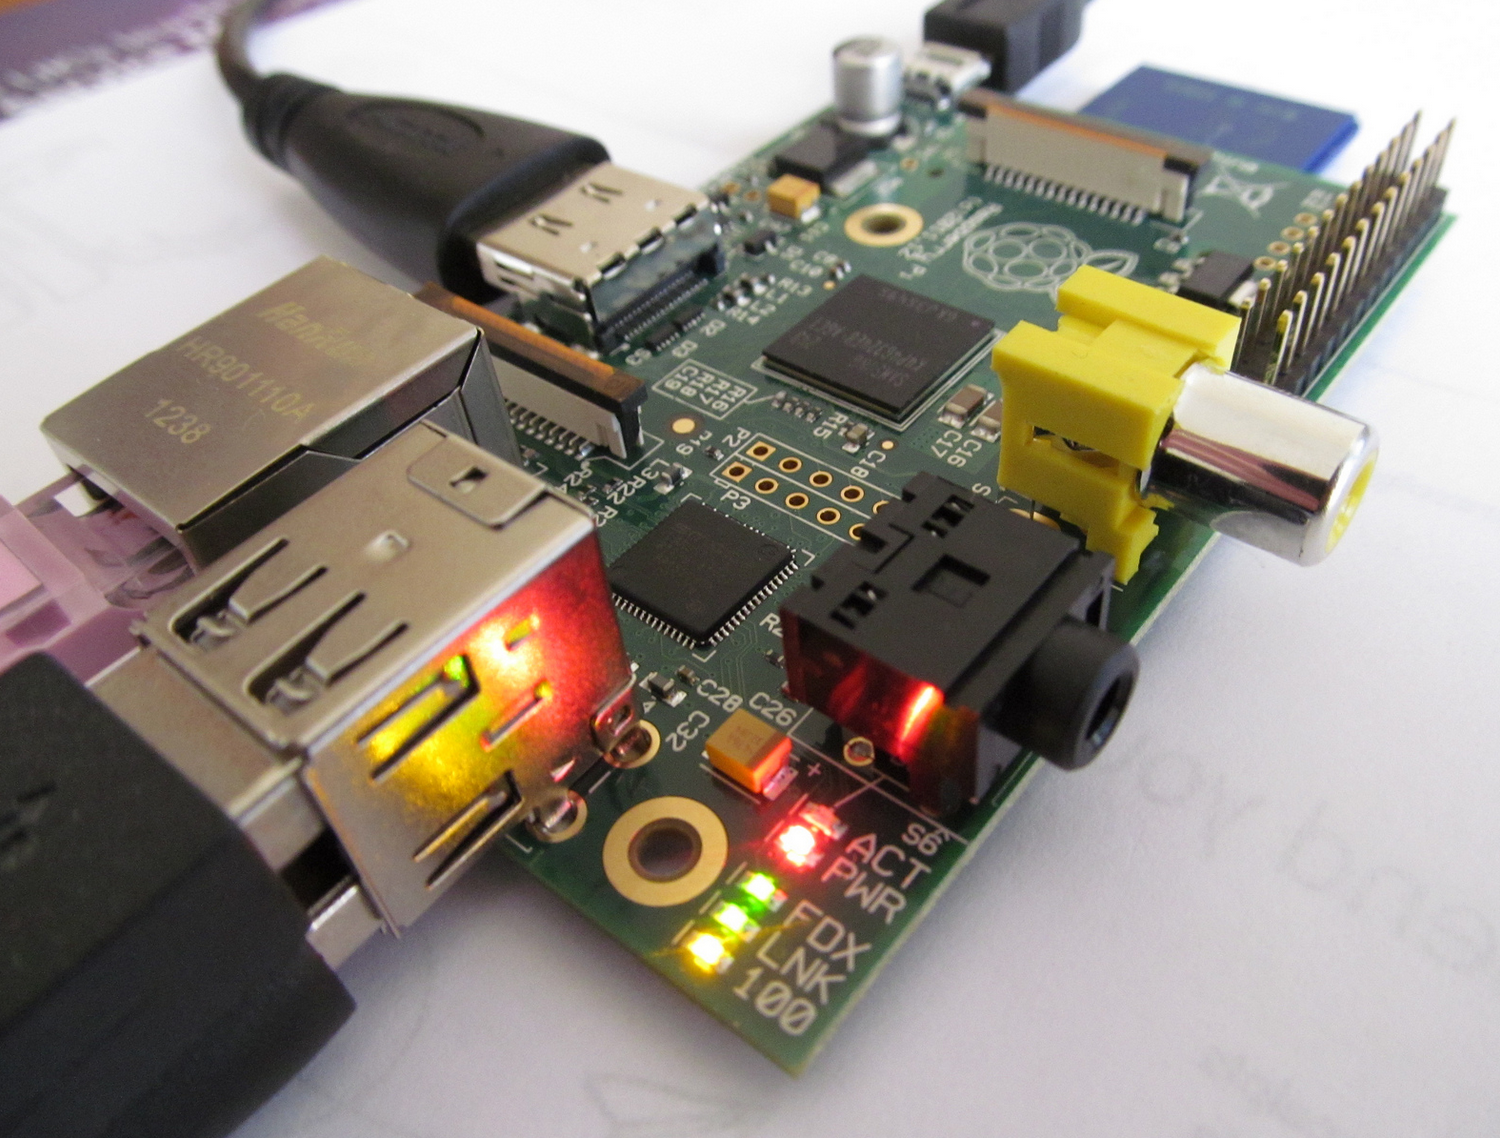 How to make a DIY home alarm system with a raspberry pi and a webcam